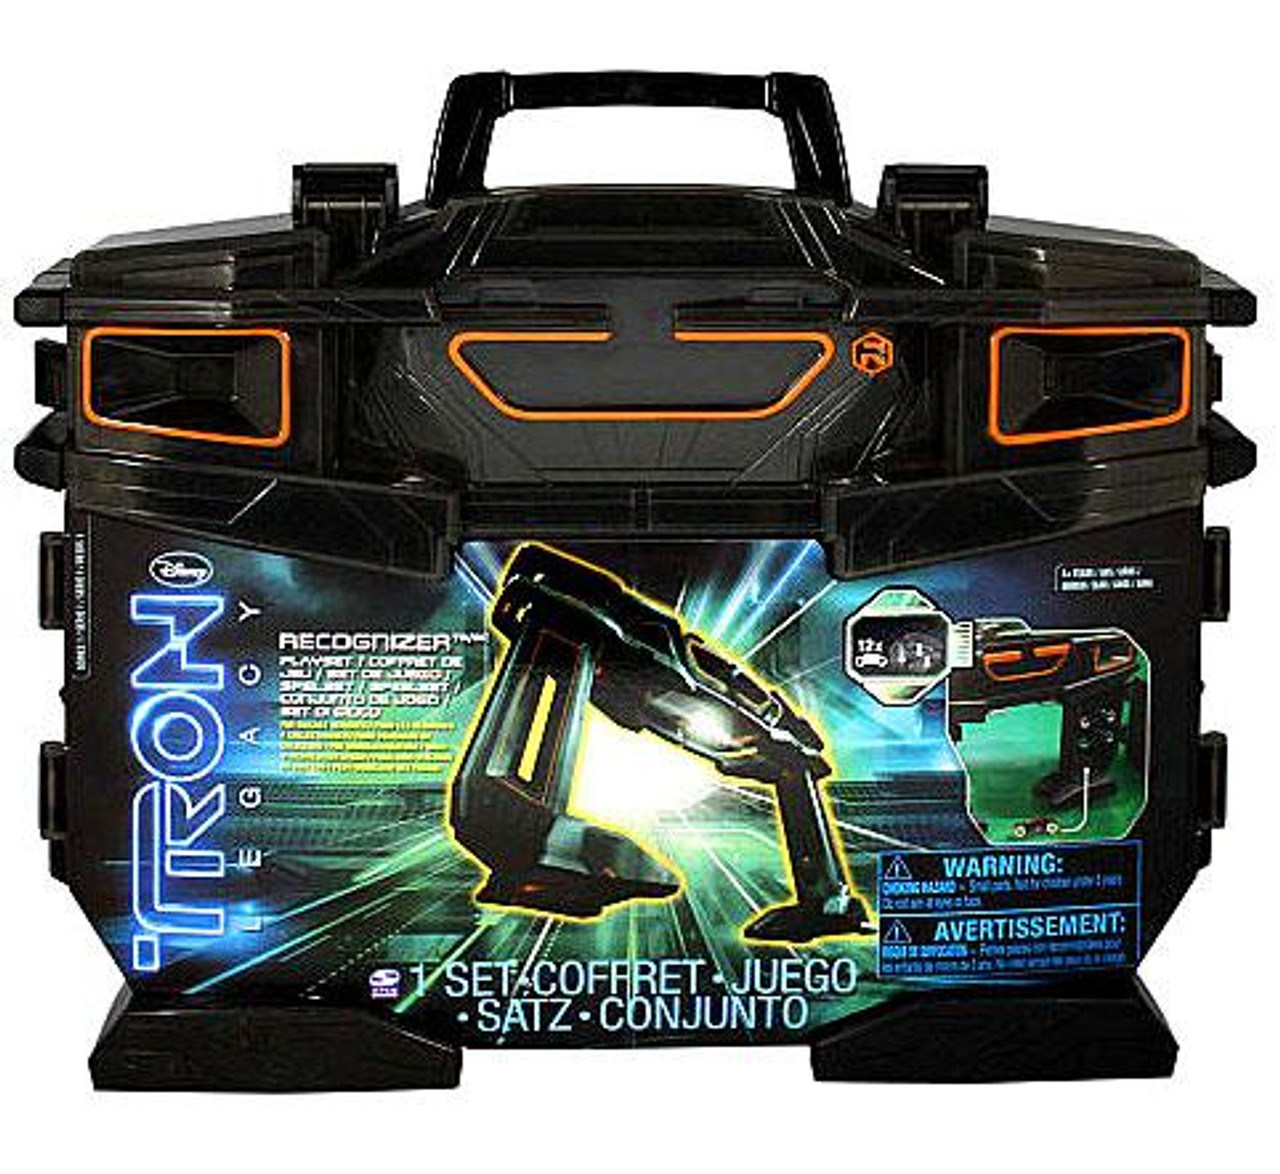 Tron Legacy Recognizer Carry Case Playset